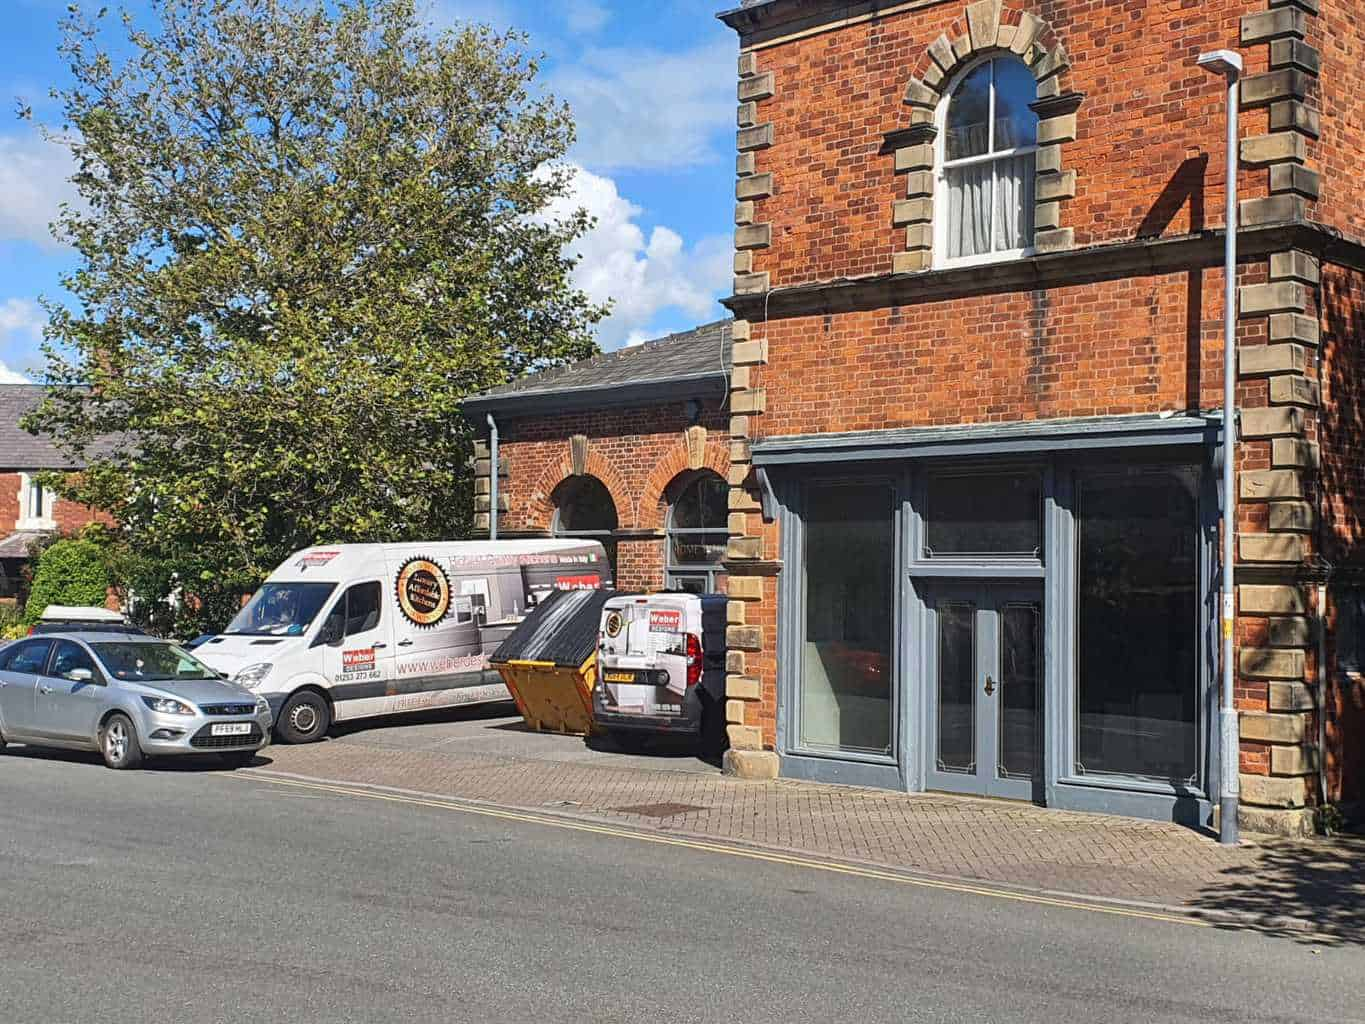 New business coming to Lytham is set to open in the historic Lytham Market Hall